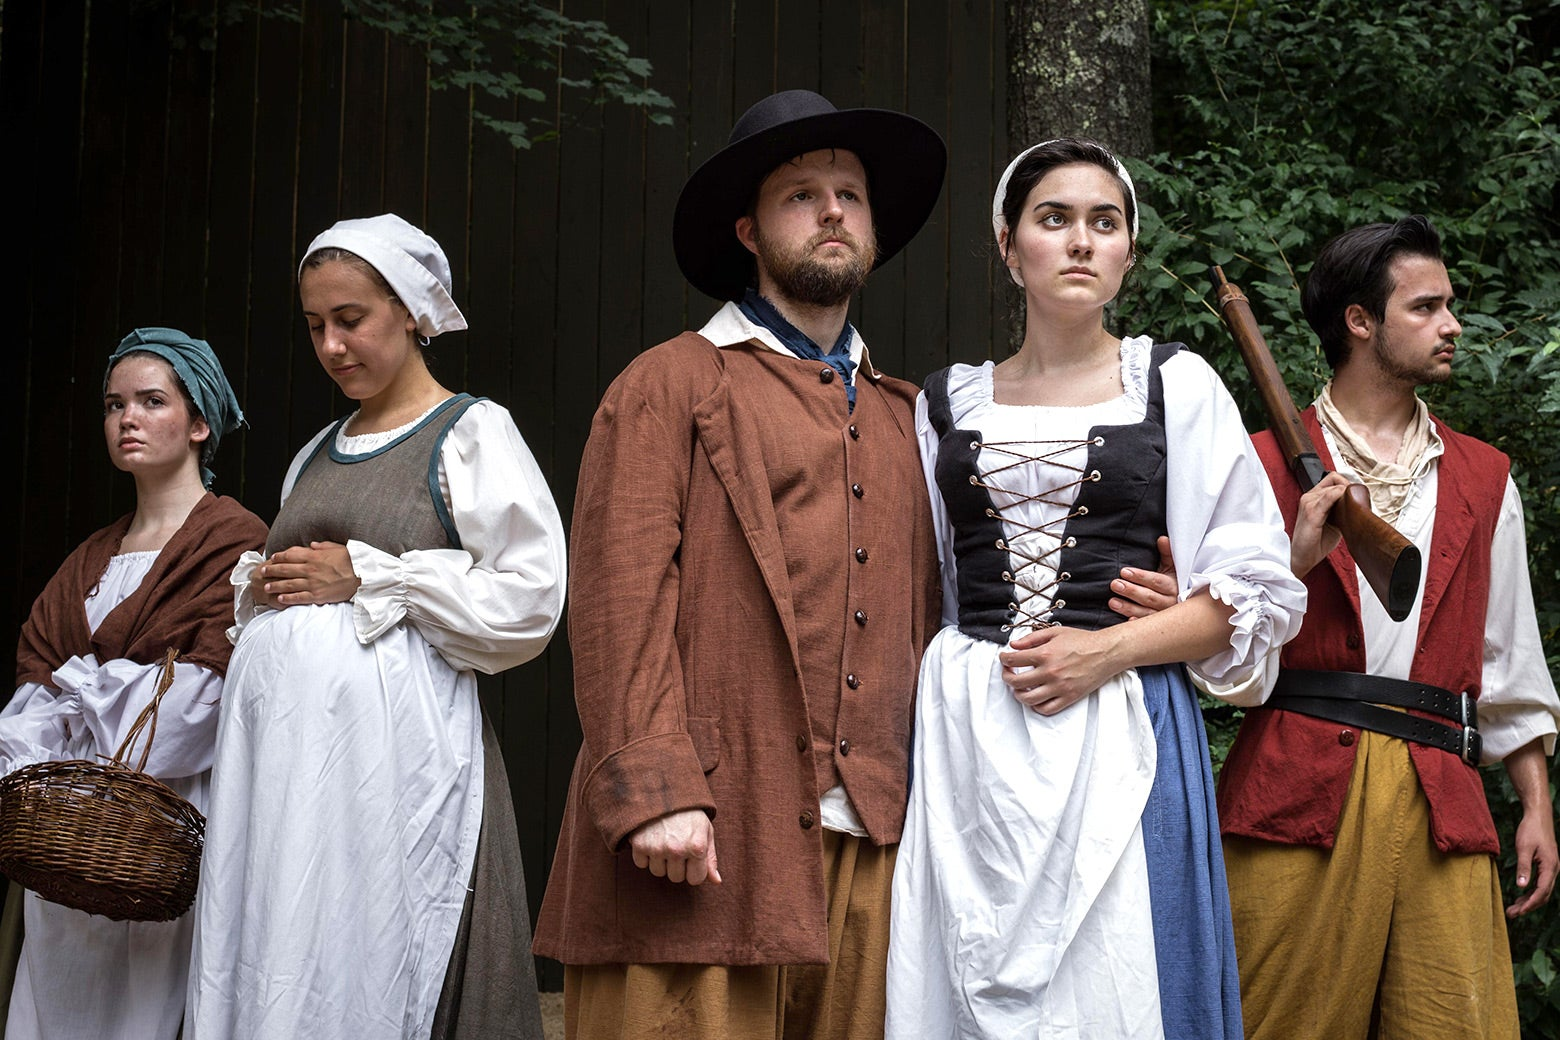 The cast of From This Day Forward, dressed in colonial-era garb.